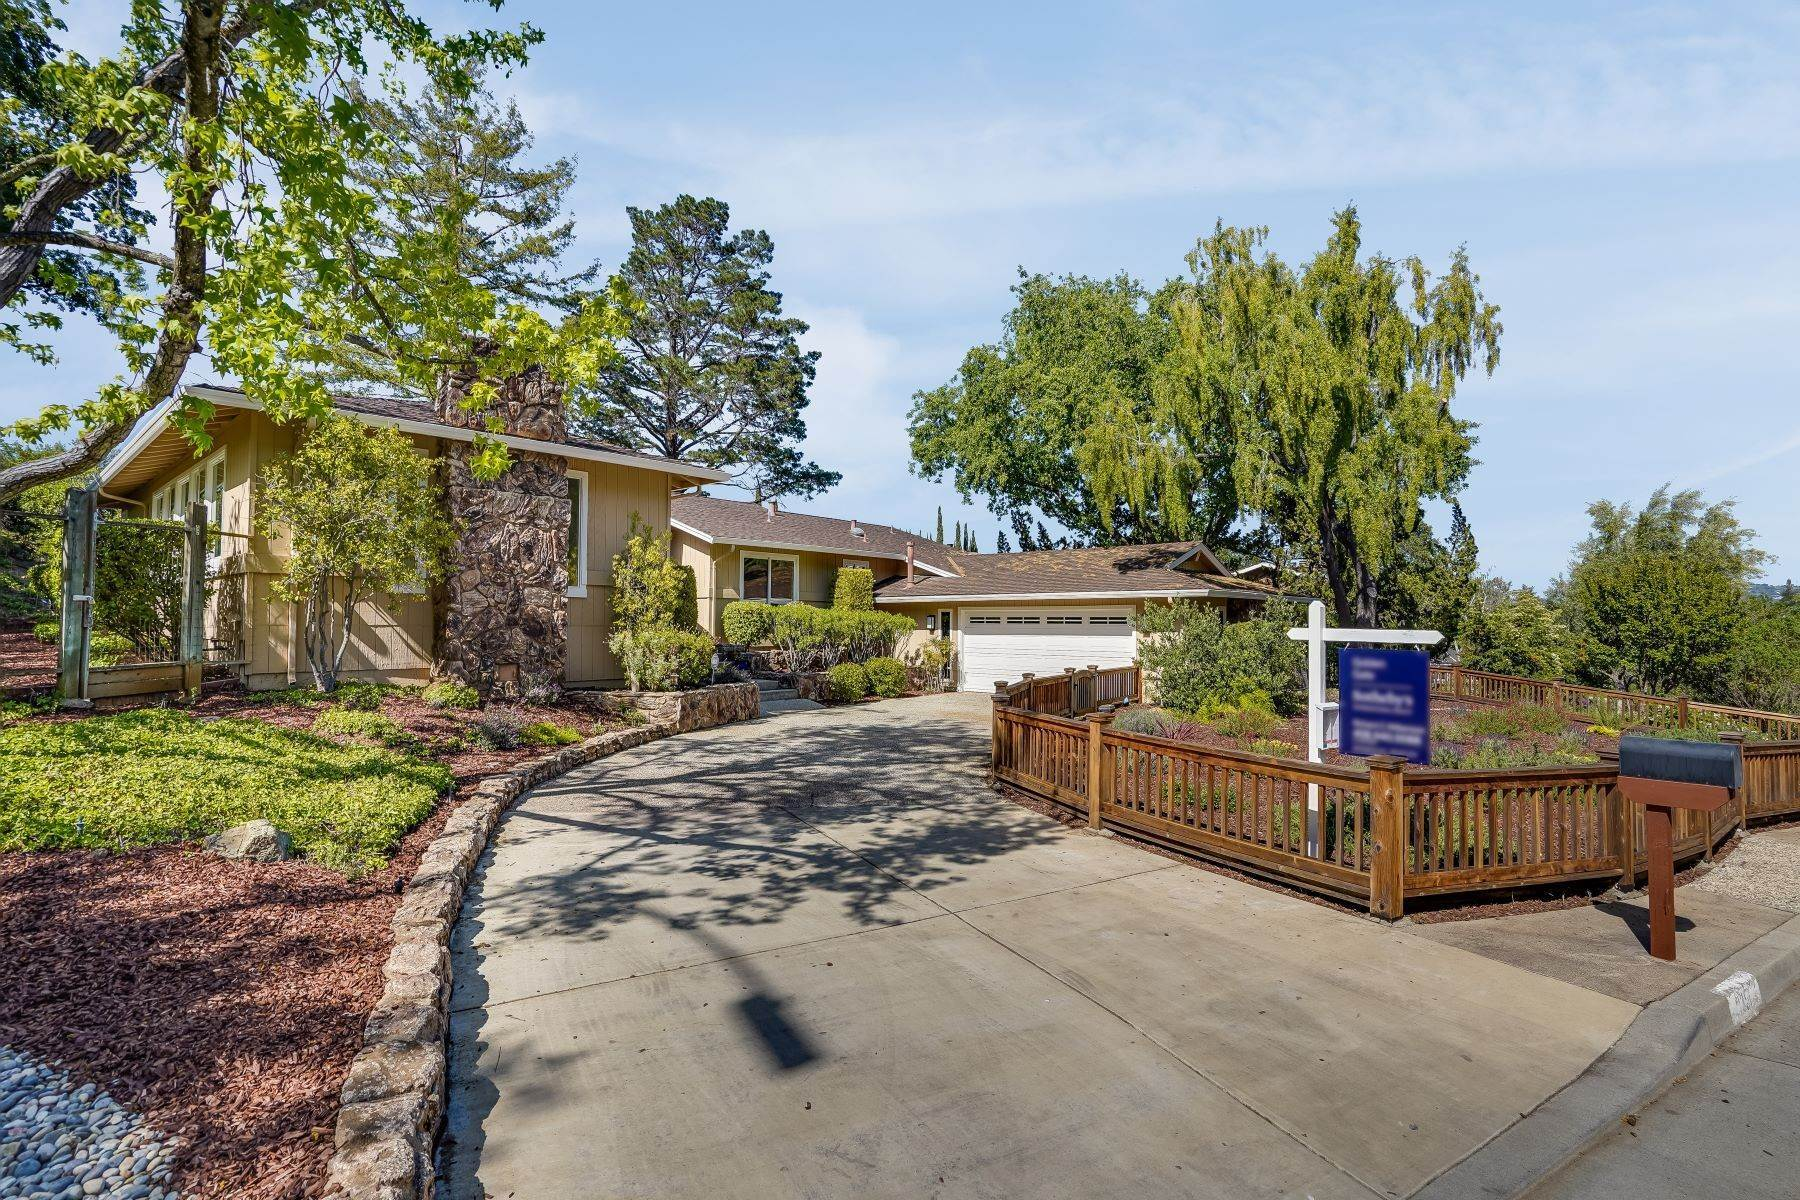 Single Family Homes for Sale at Country Estate with Wonderful Views 1351 Hidden Mine Road San Jose, California 95120 United States